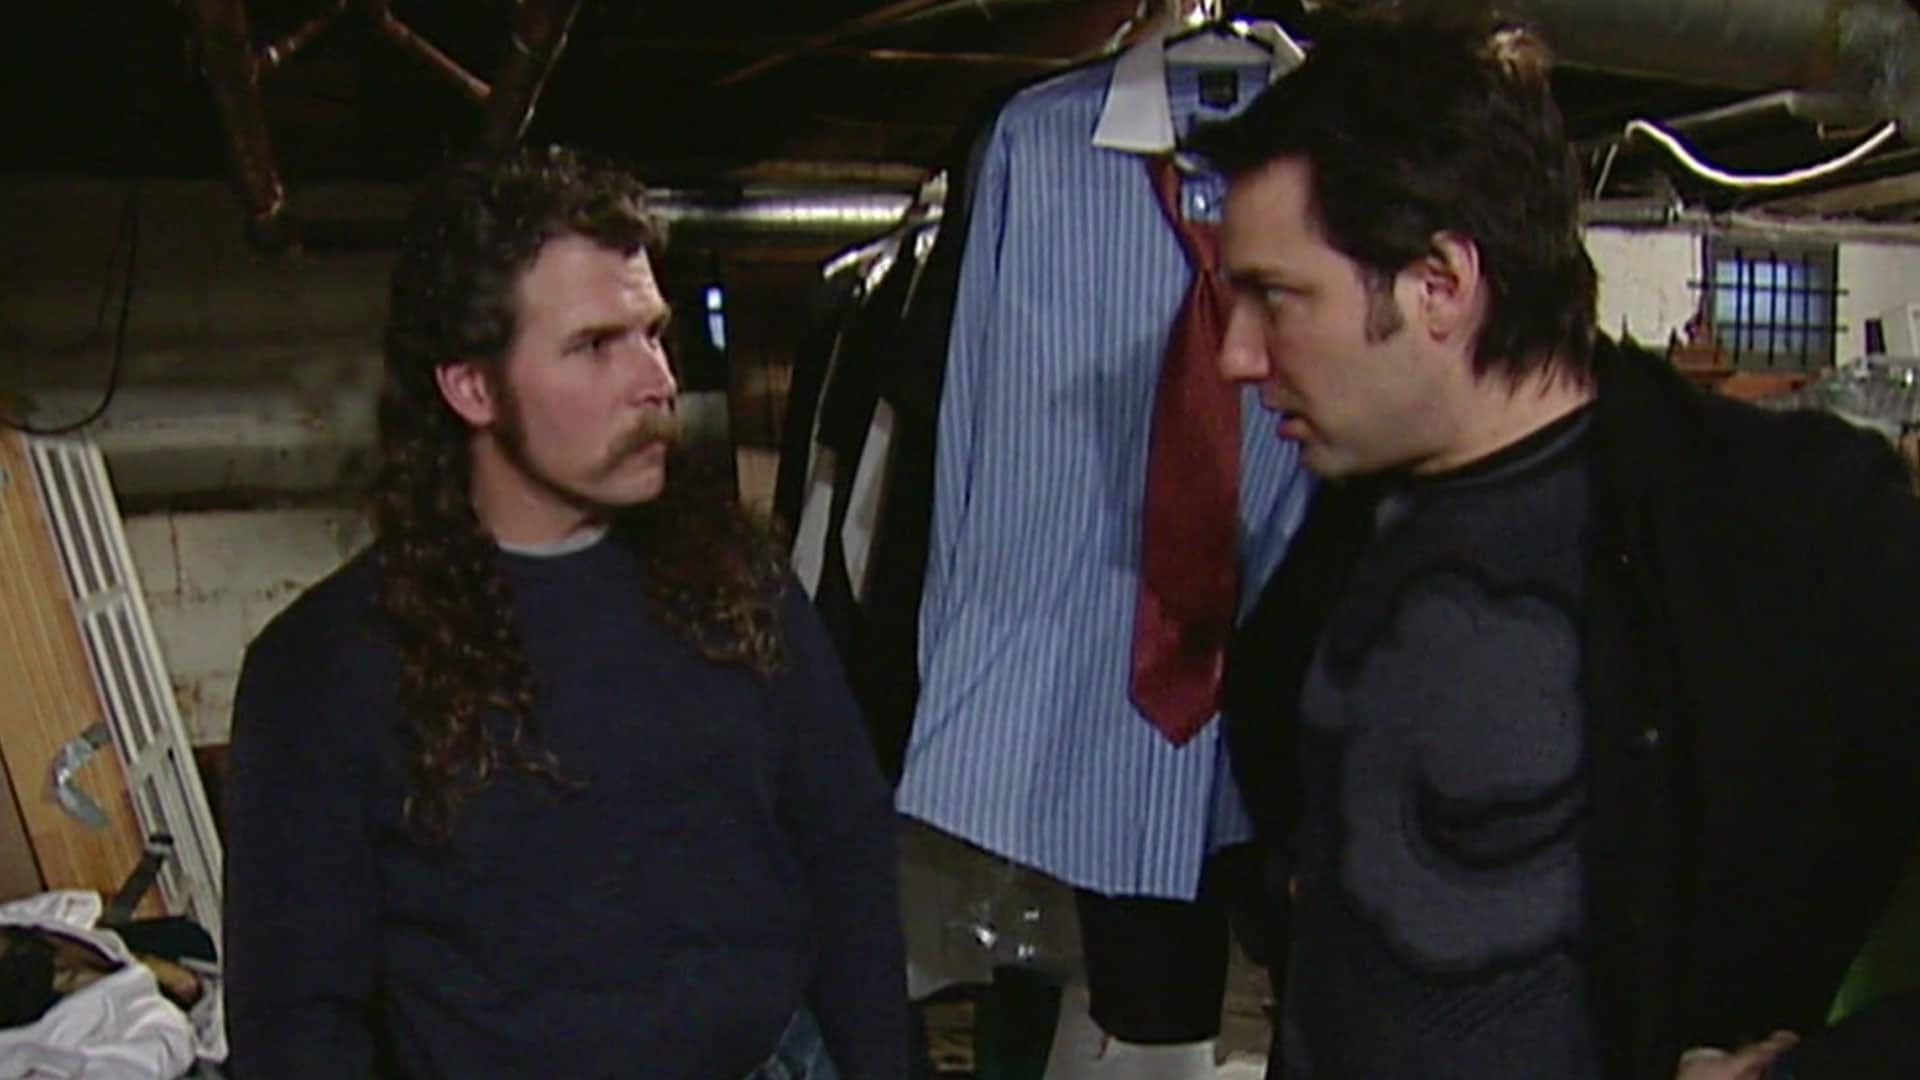 Do You Know the Mullet Man?: Mark F.